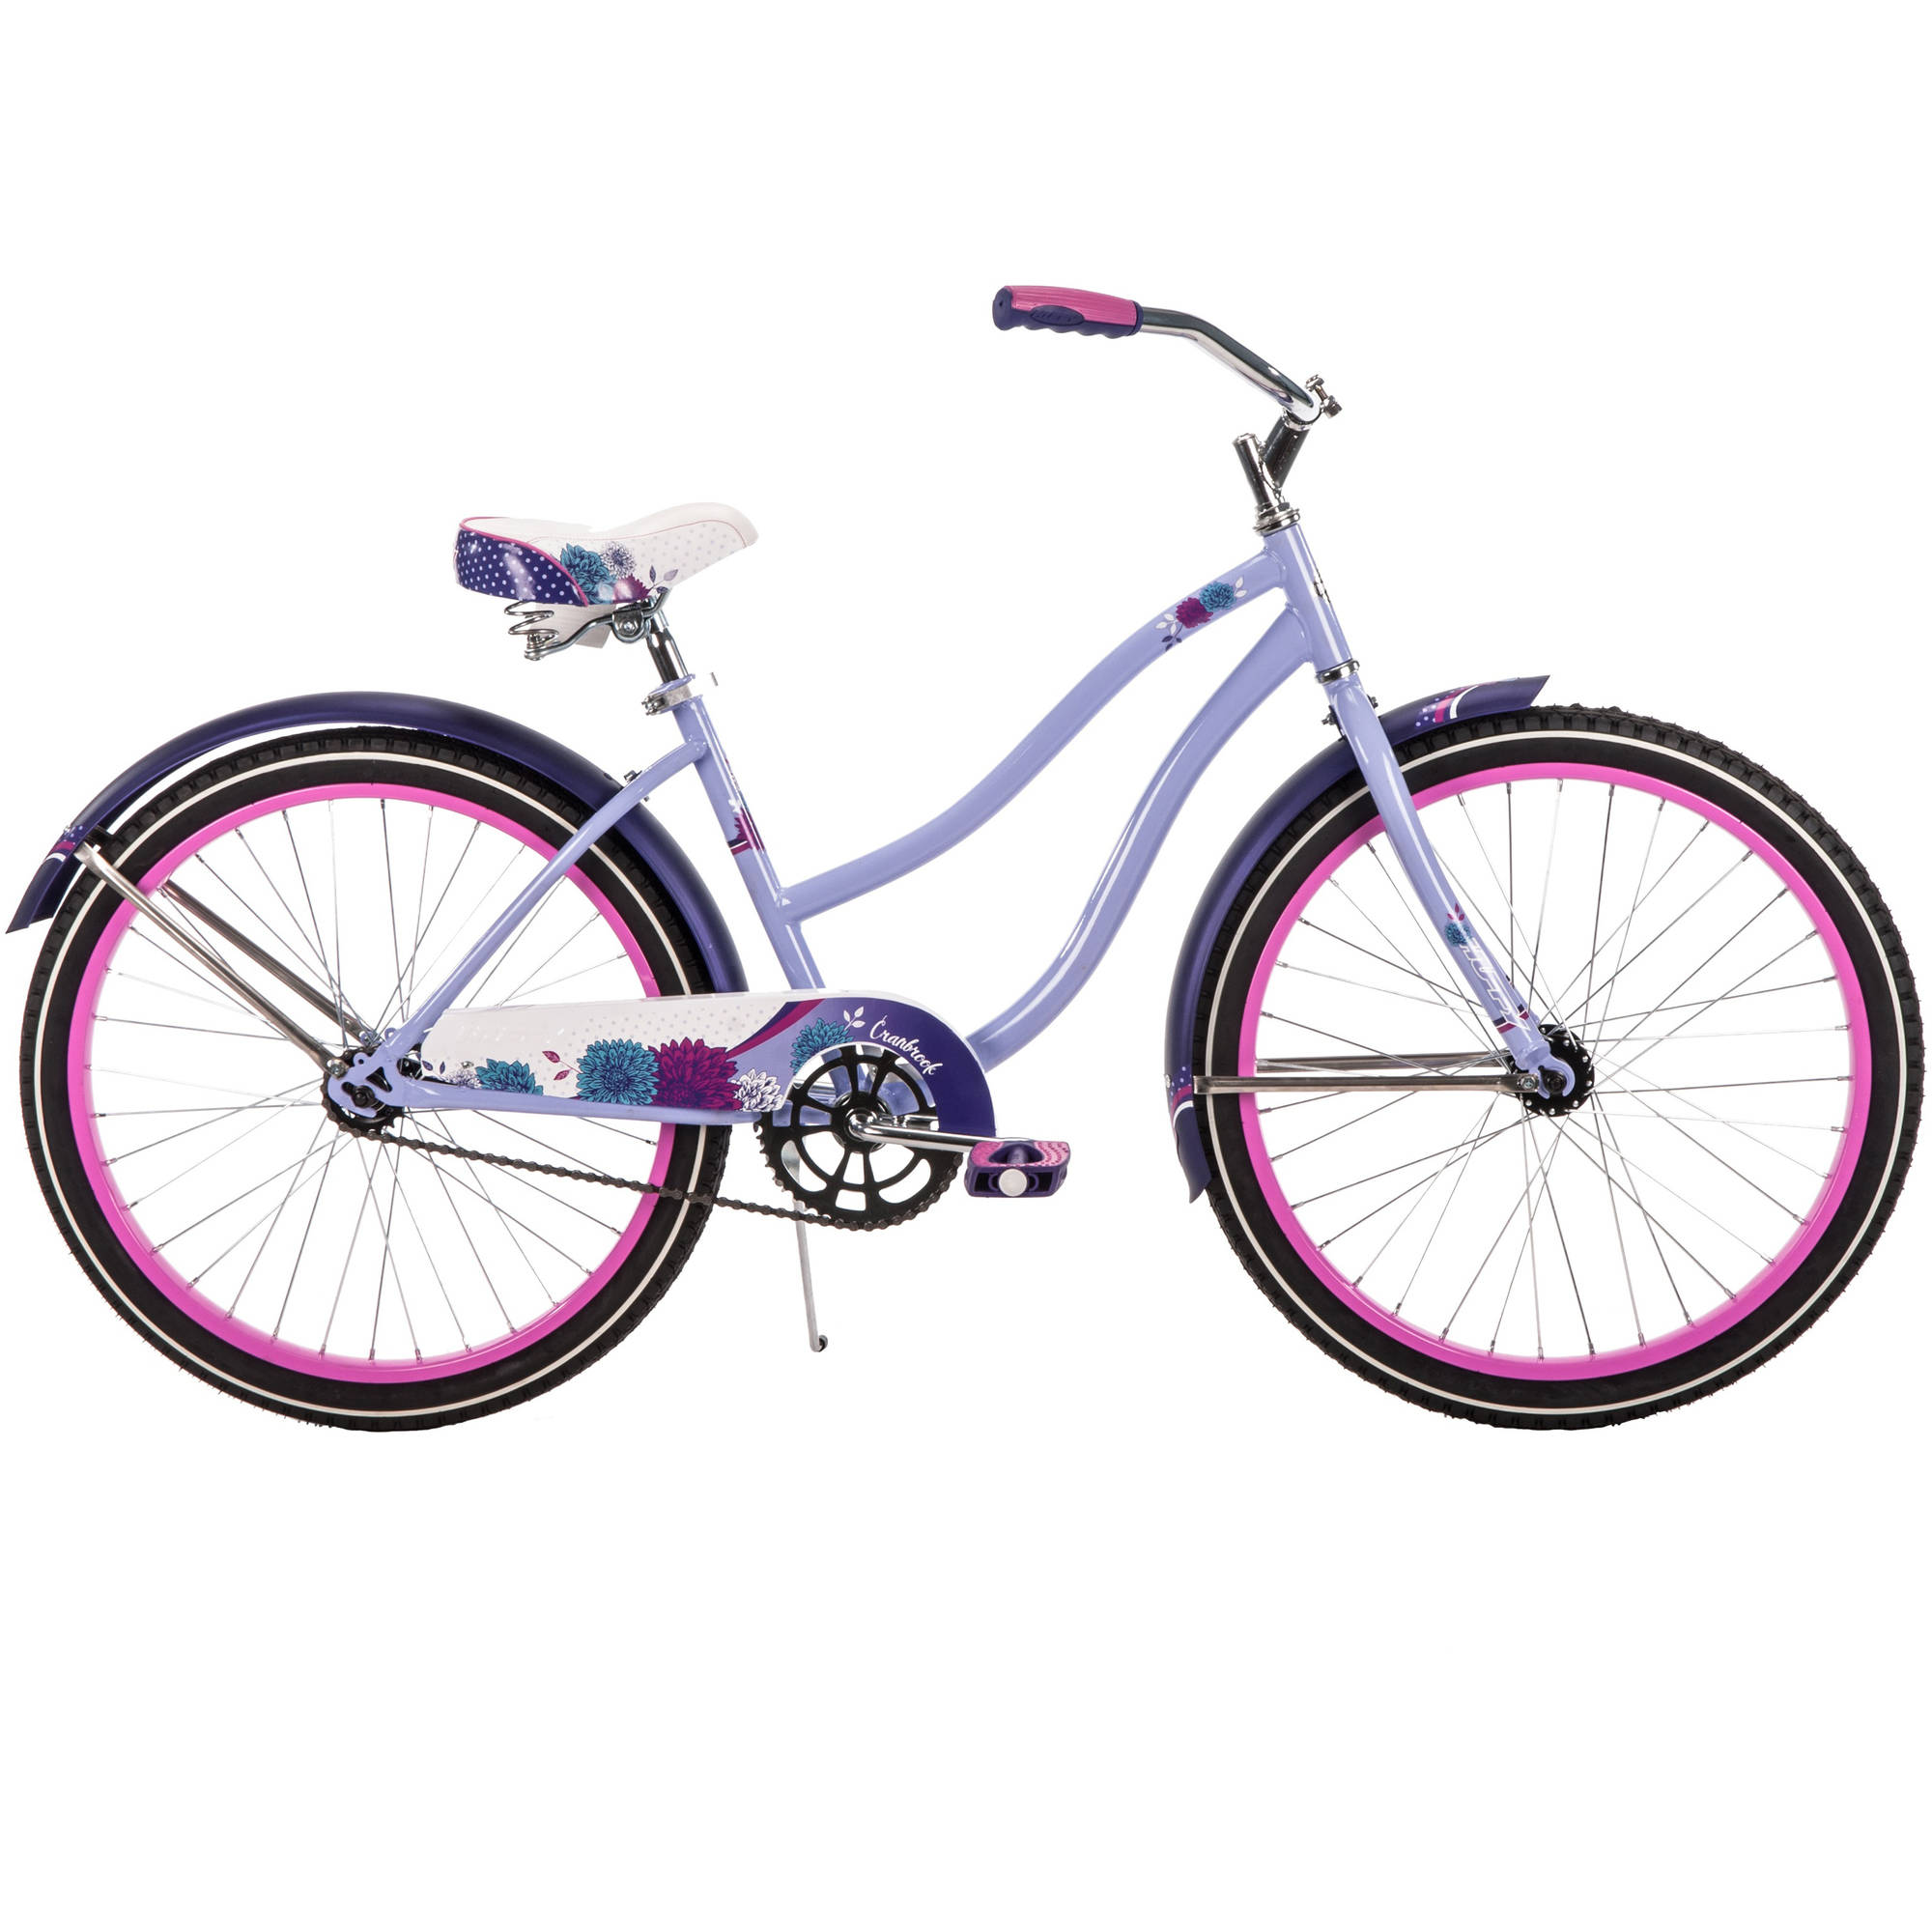 "Huffy 24"" Cranbrook Girls' Cruiser Bike, Lilac Purple"